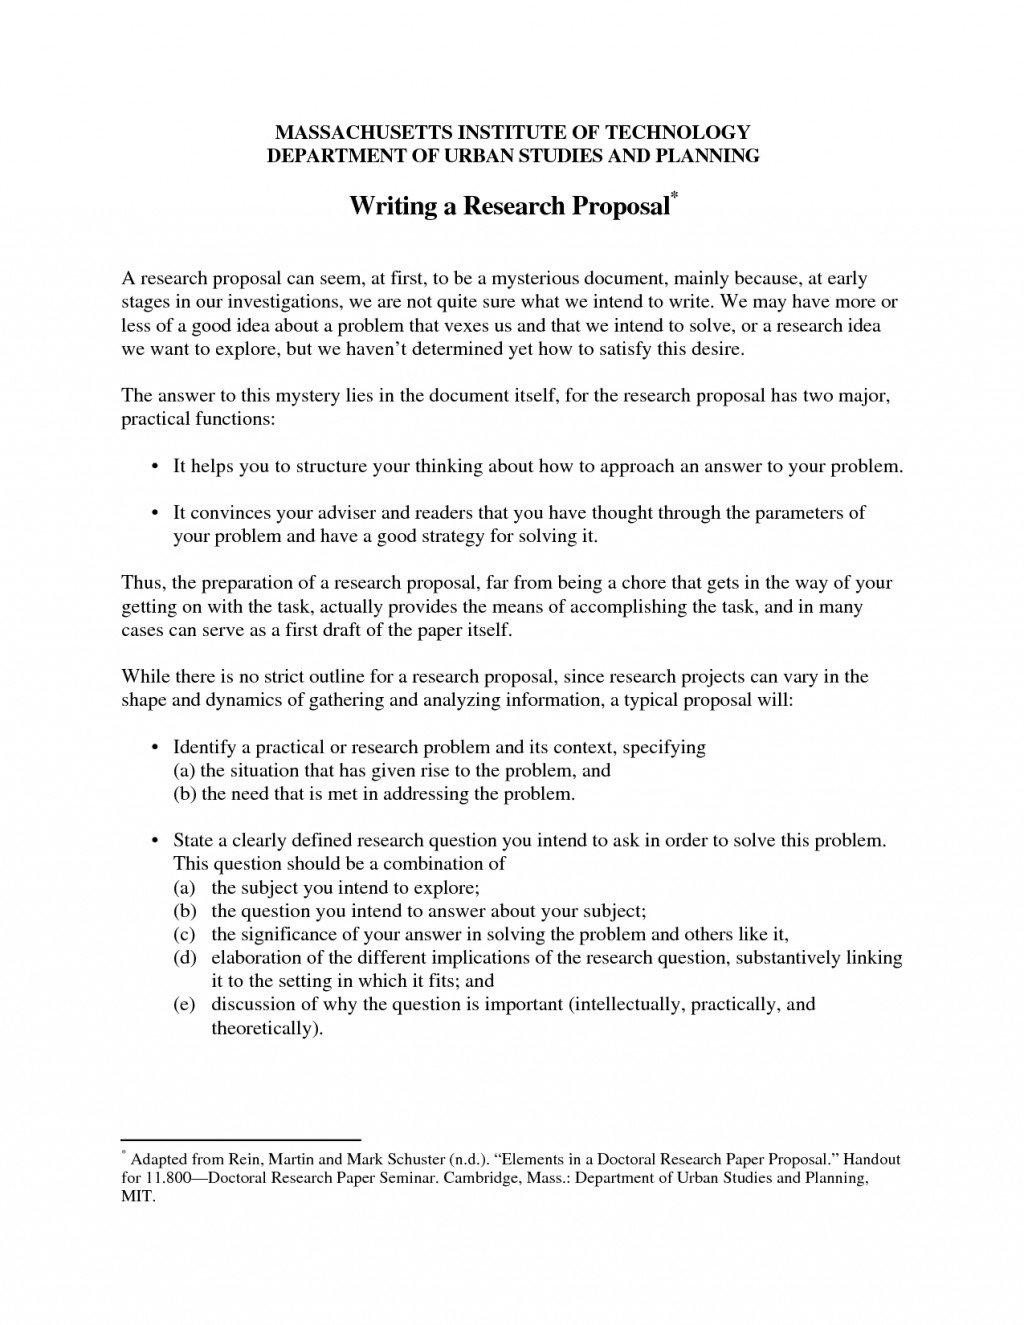 014 Diabetes Research Paper Outline What Does Proposal Look Like 629236 Stirring Sample For Type 2 Large